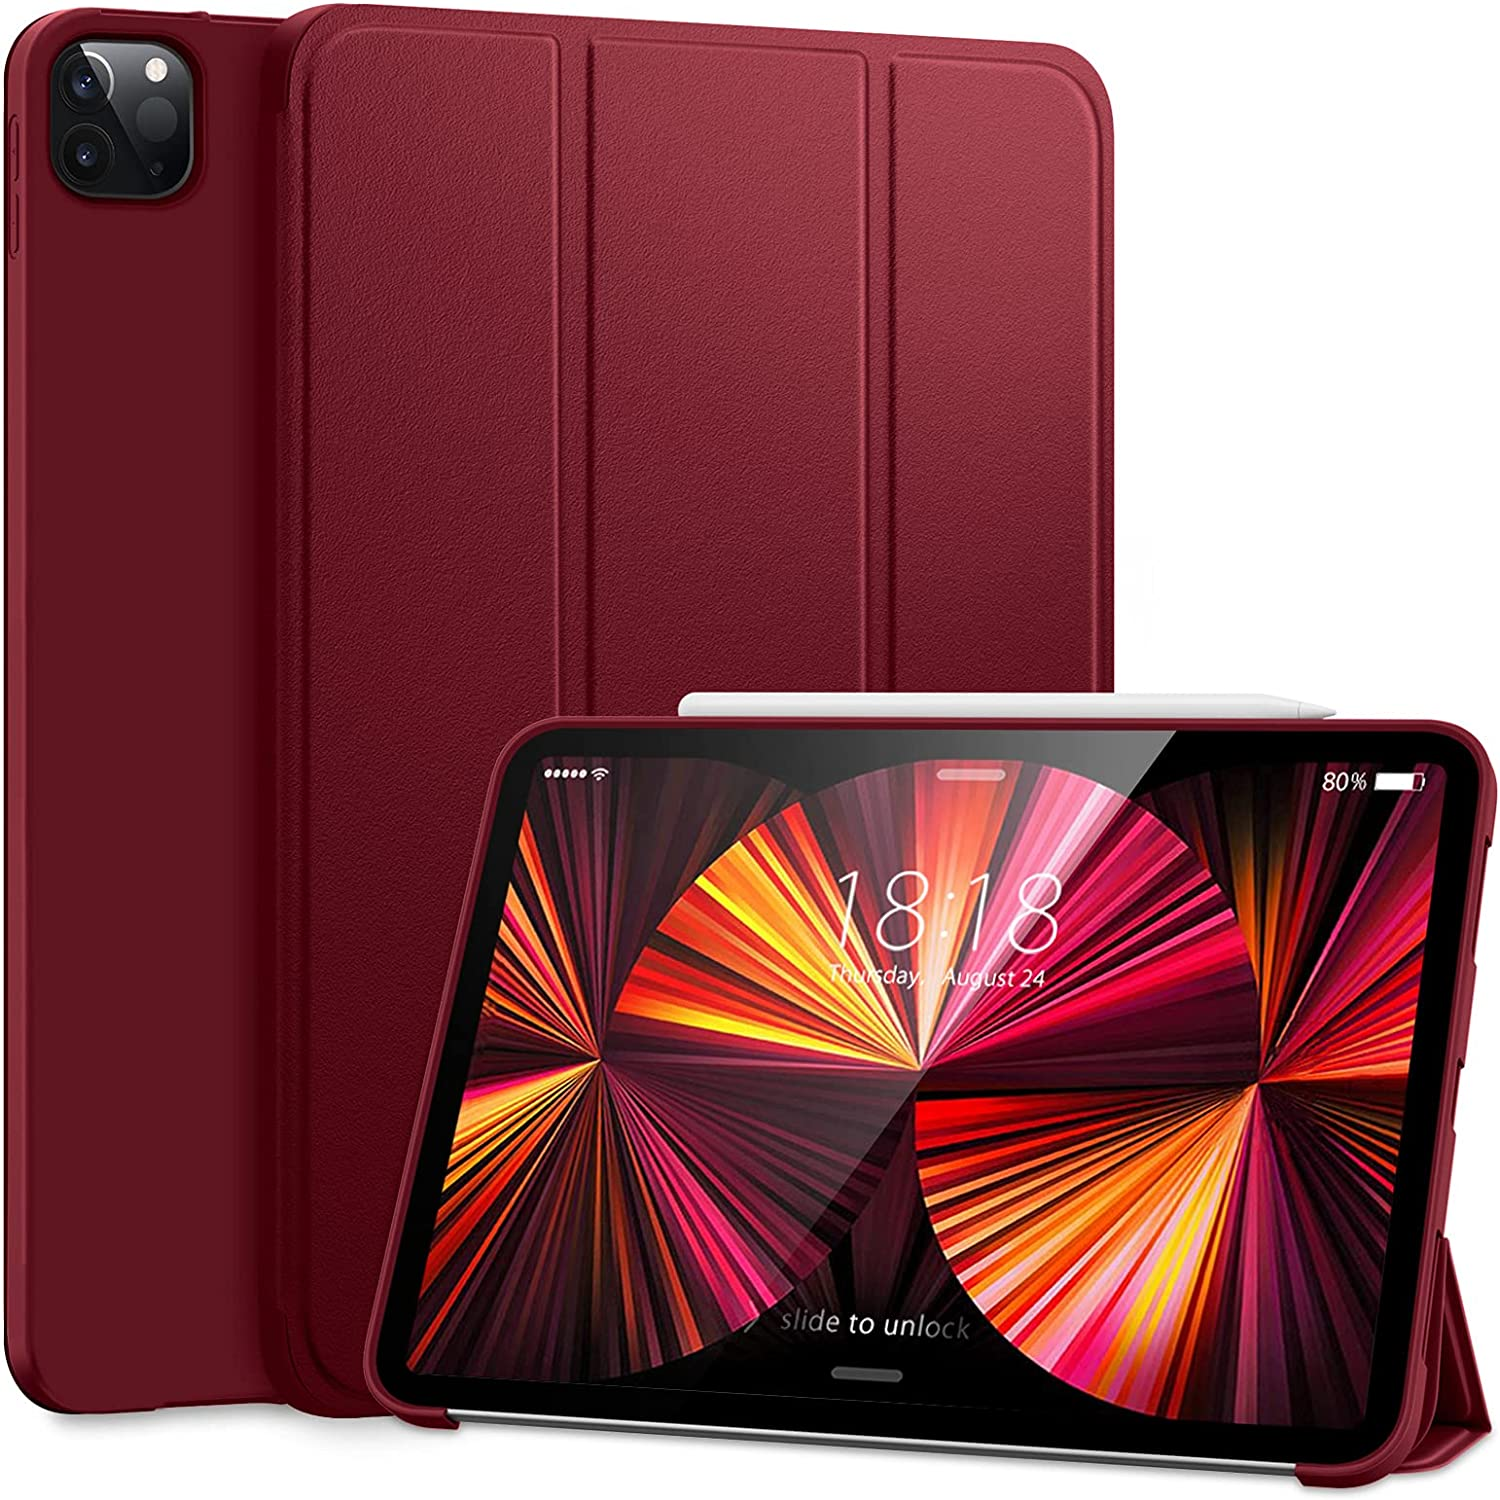 DTTO Case for iPad Pro 11 Inch 2nd/3rd Generation 2021/2020/2018,Ultra Lightweight Smart Trifold Stand with TPU Soft Back Cover,Also Fit iPad Air 4 [Auto Sleep/Wake], Wine Red